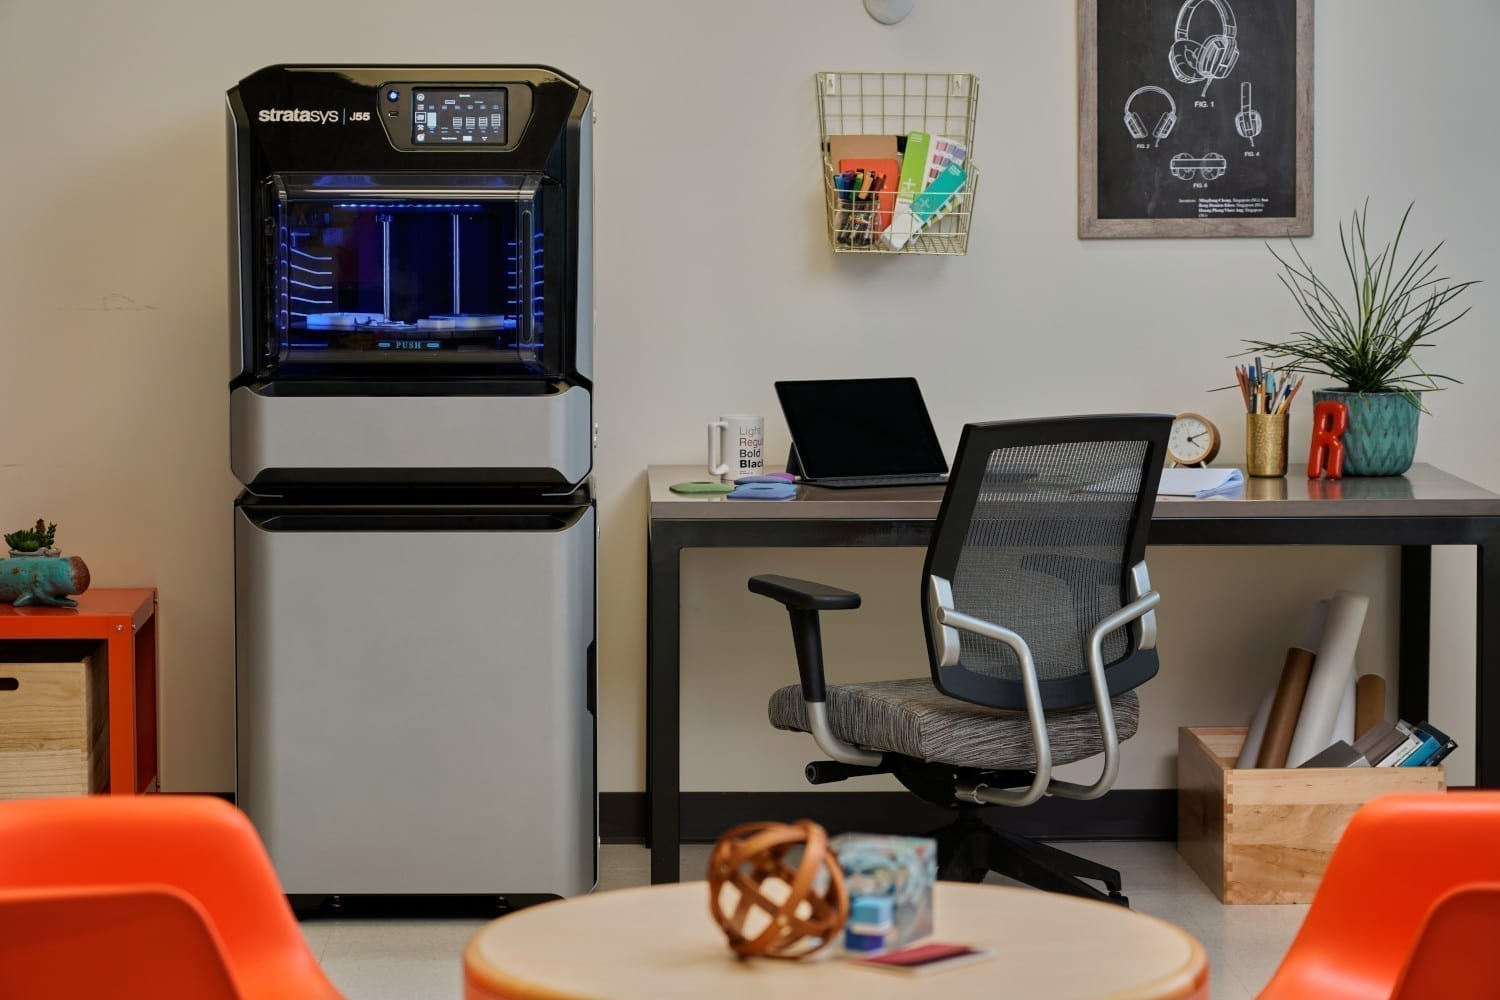 Stratasys J55 3D printer in an office setting